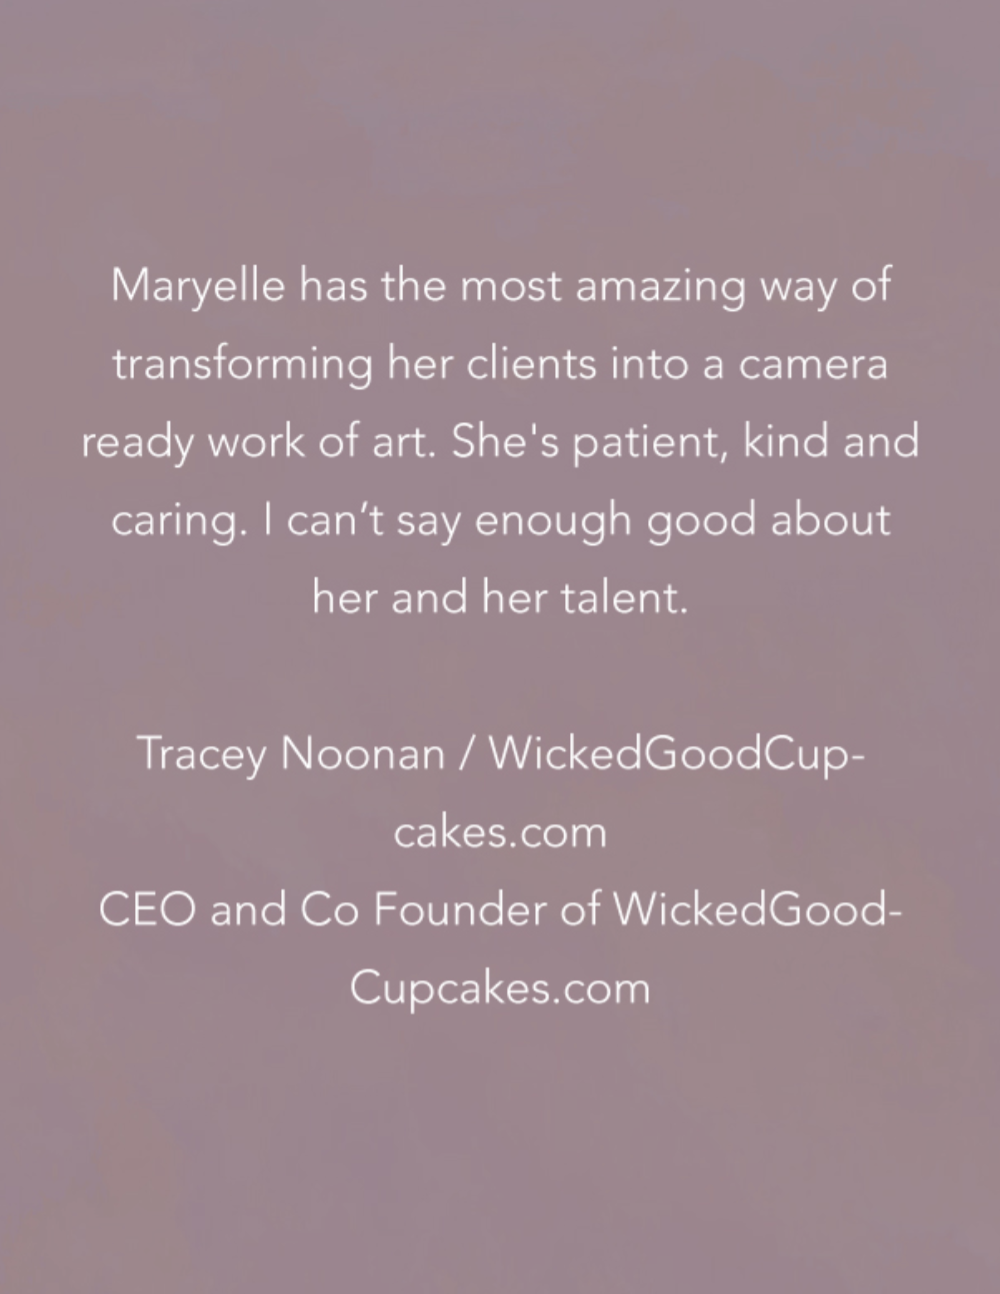 Testimonial from Tracey Noonan, CEO and Co Founder of WickedGoodCupcakes.com